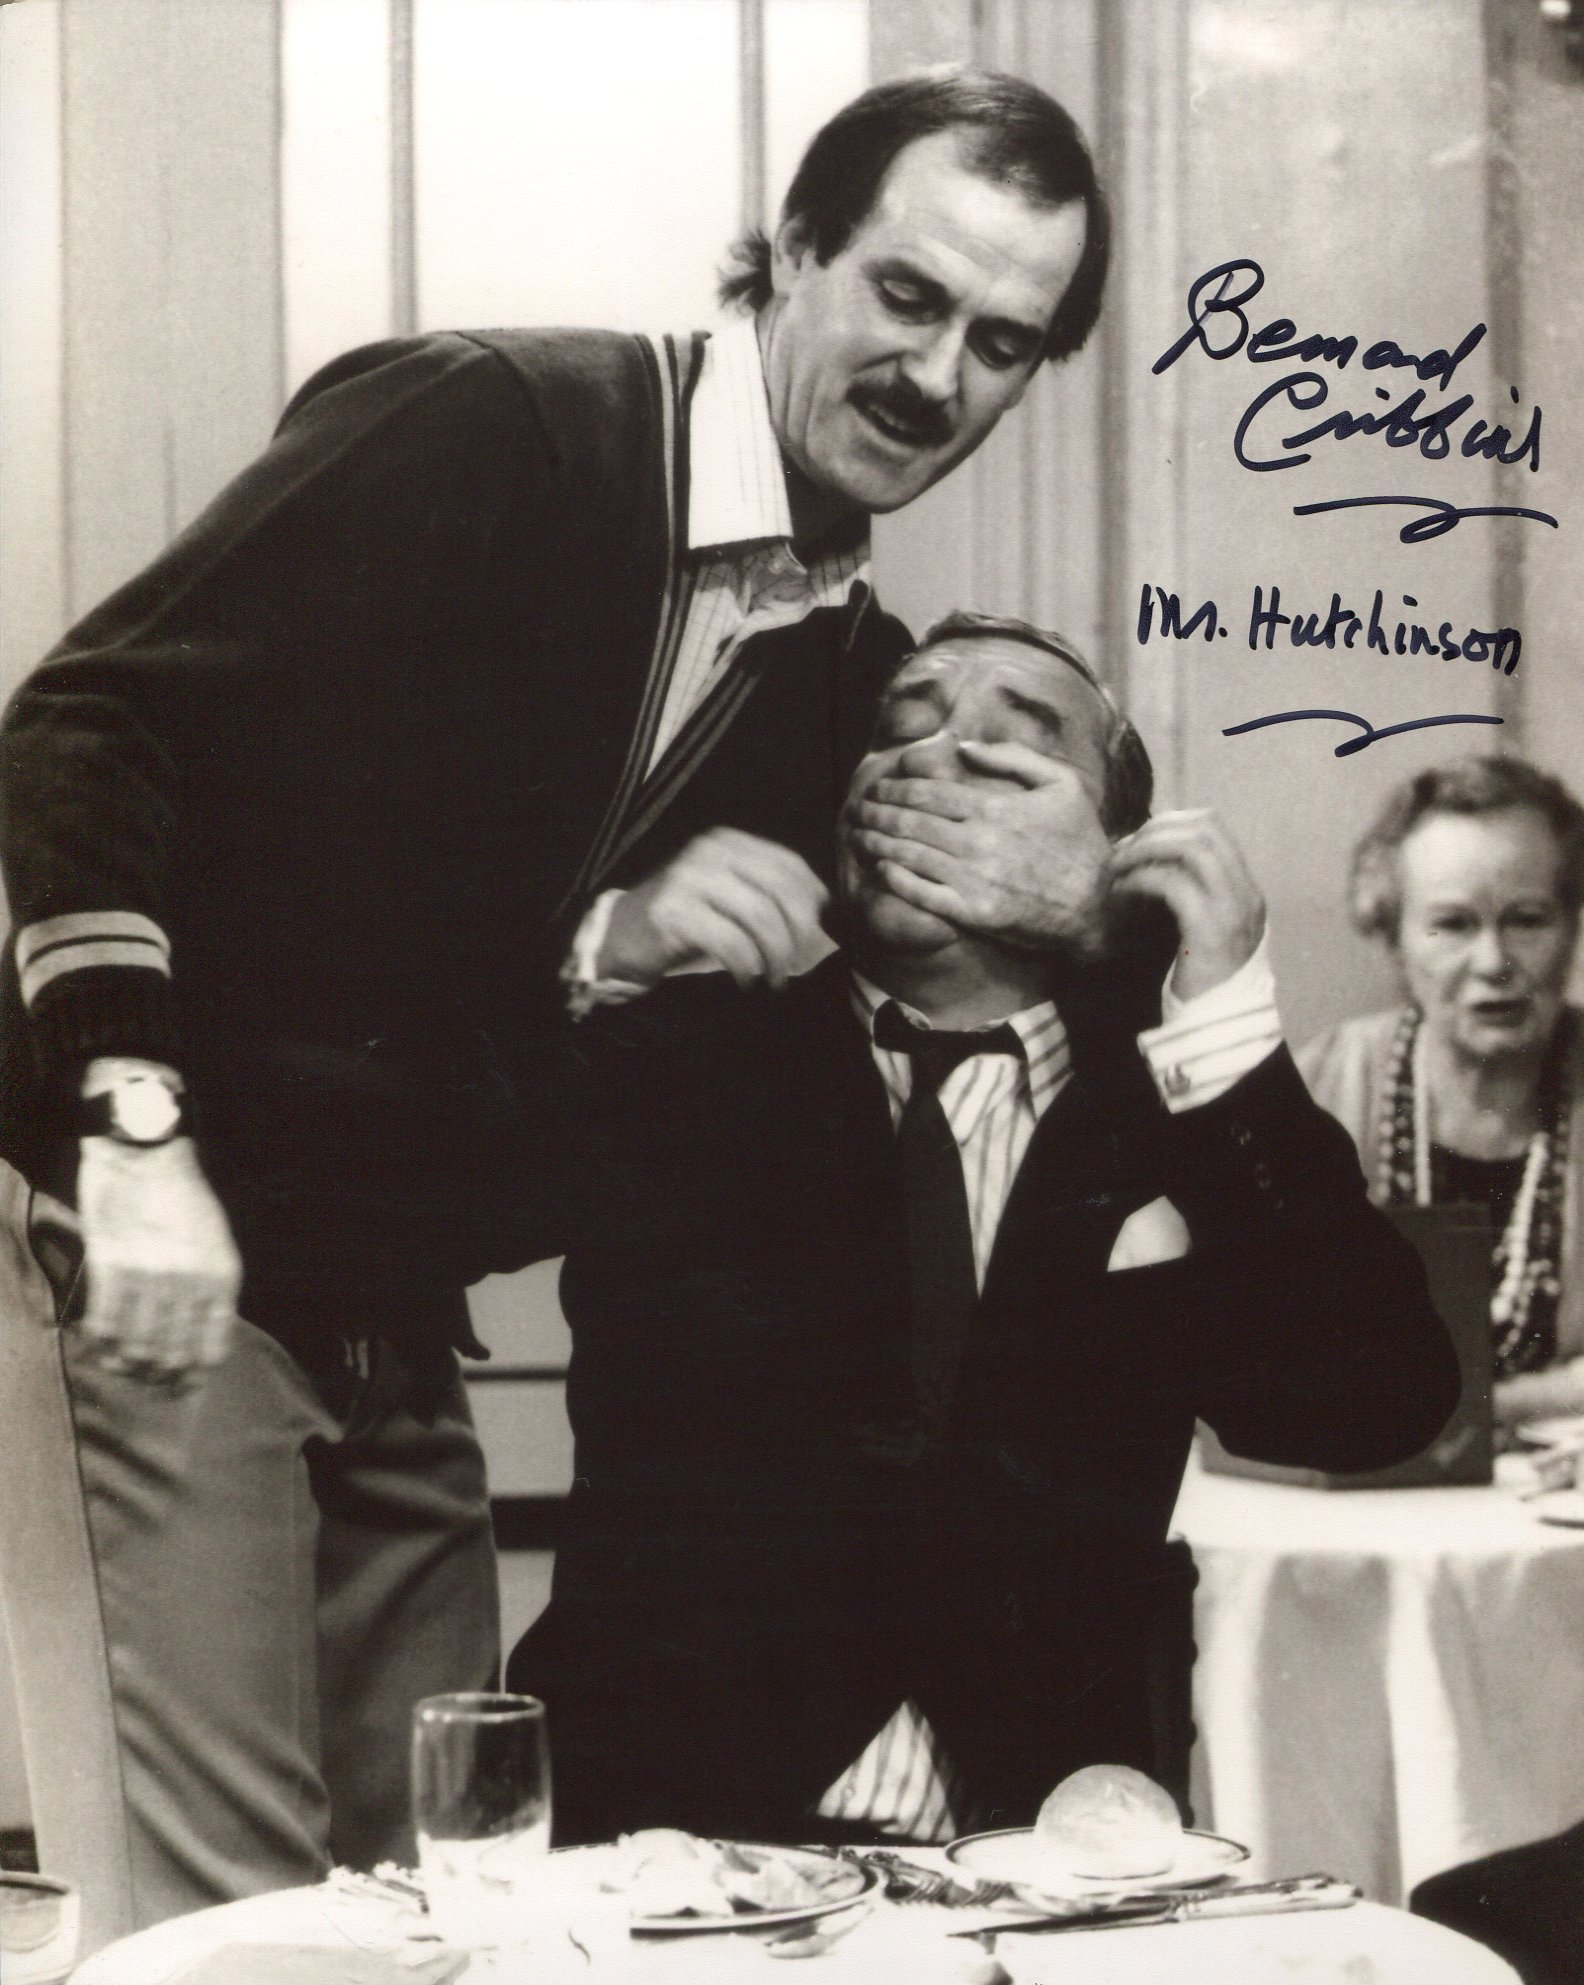 Fawlty Towers 8x10 comedy scene photo signed by actor Bernard Cribbins. Good condition. All